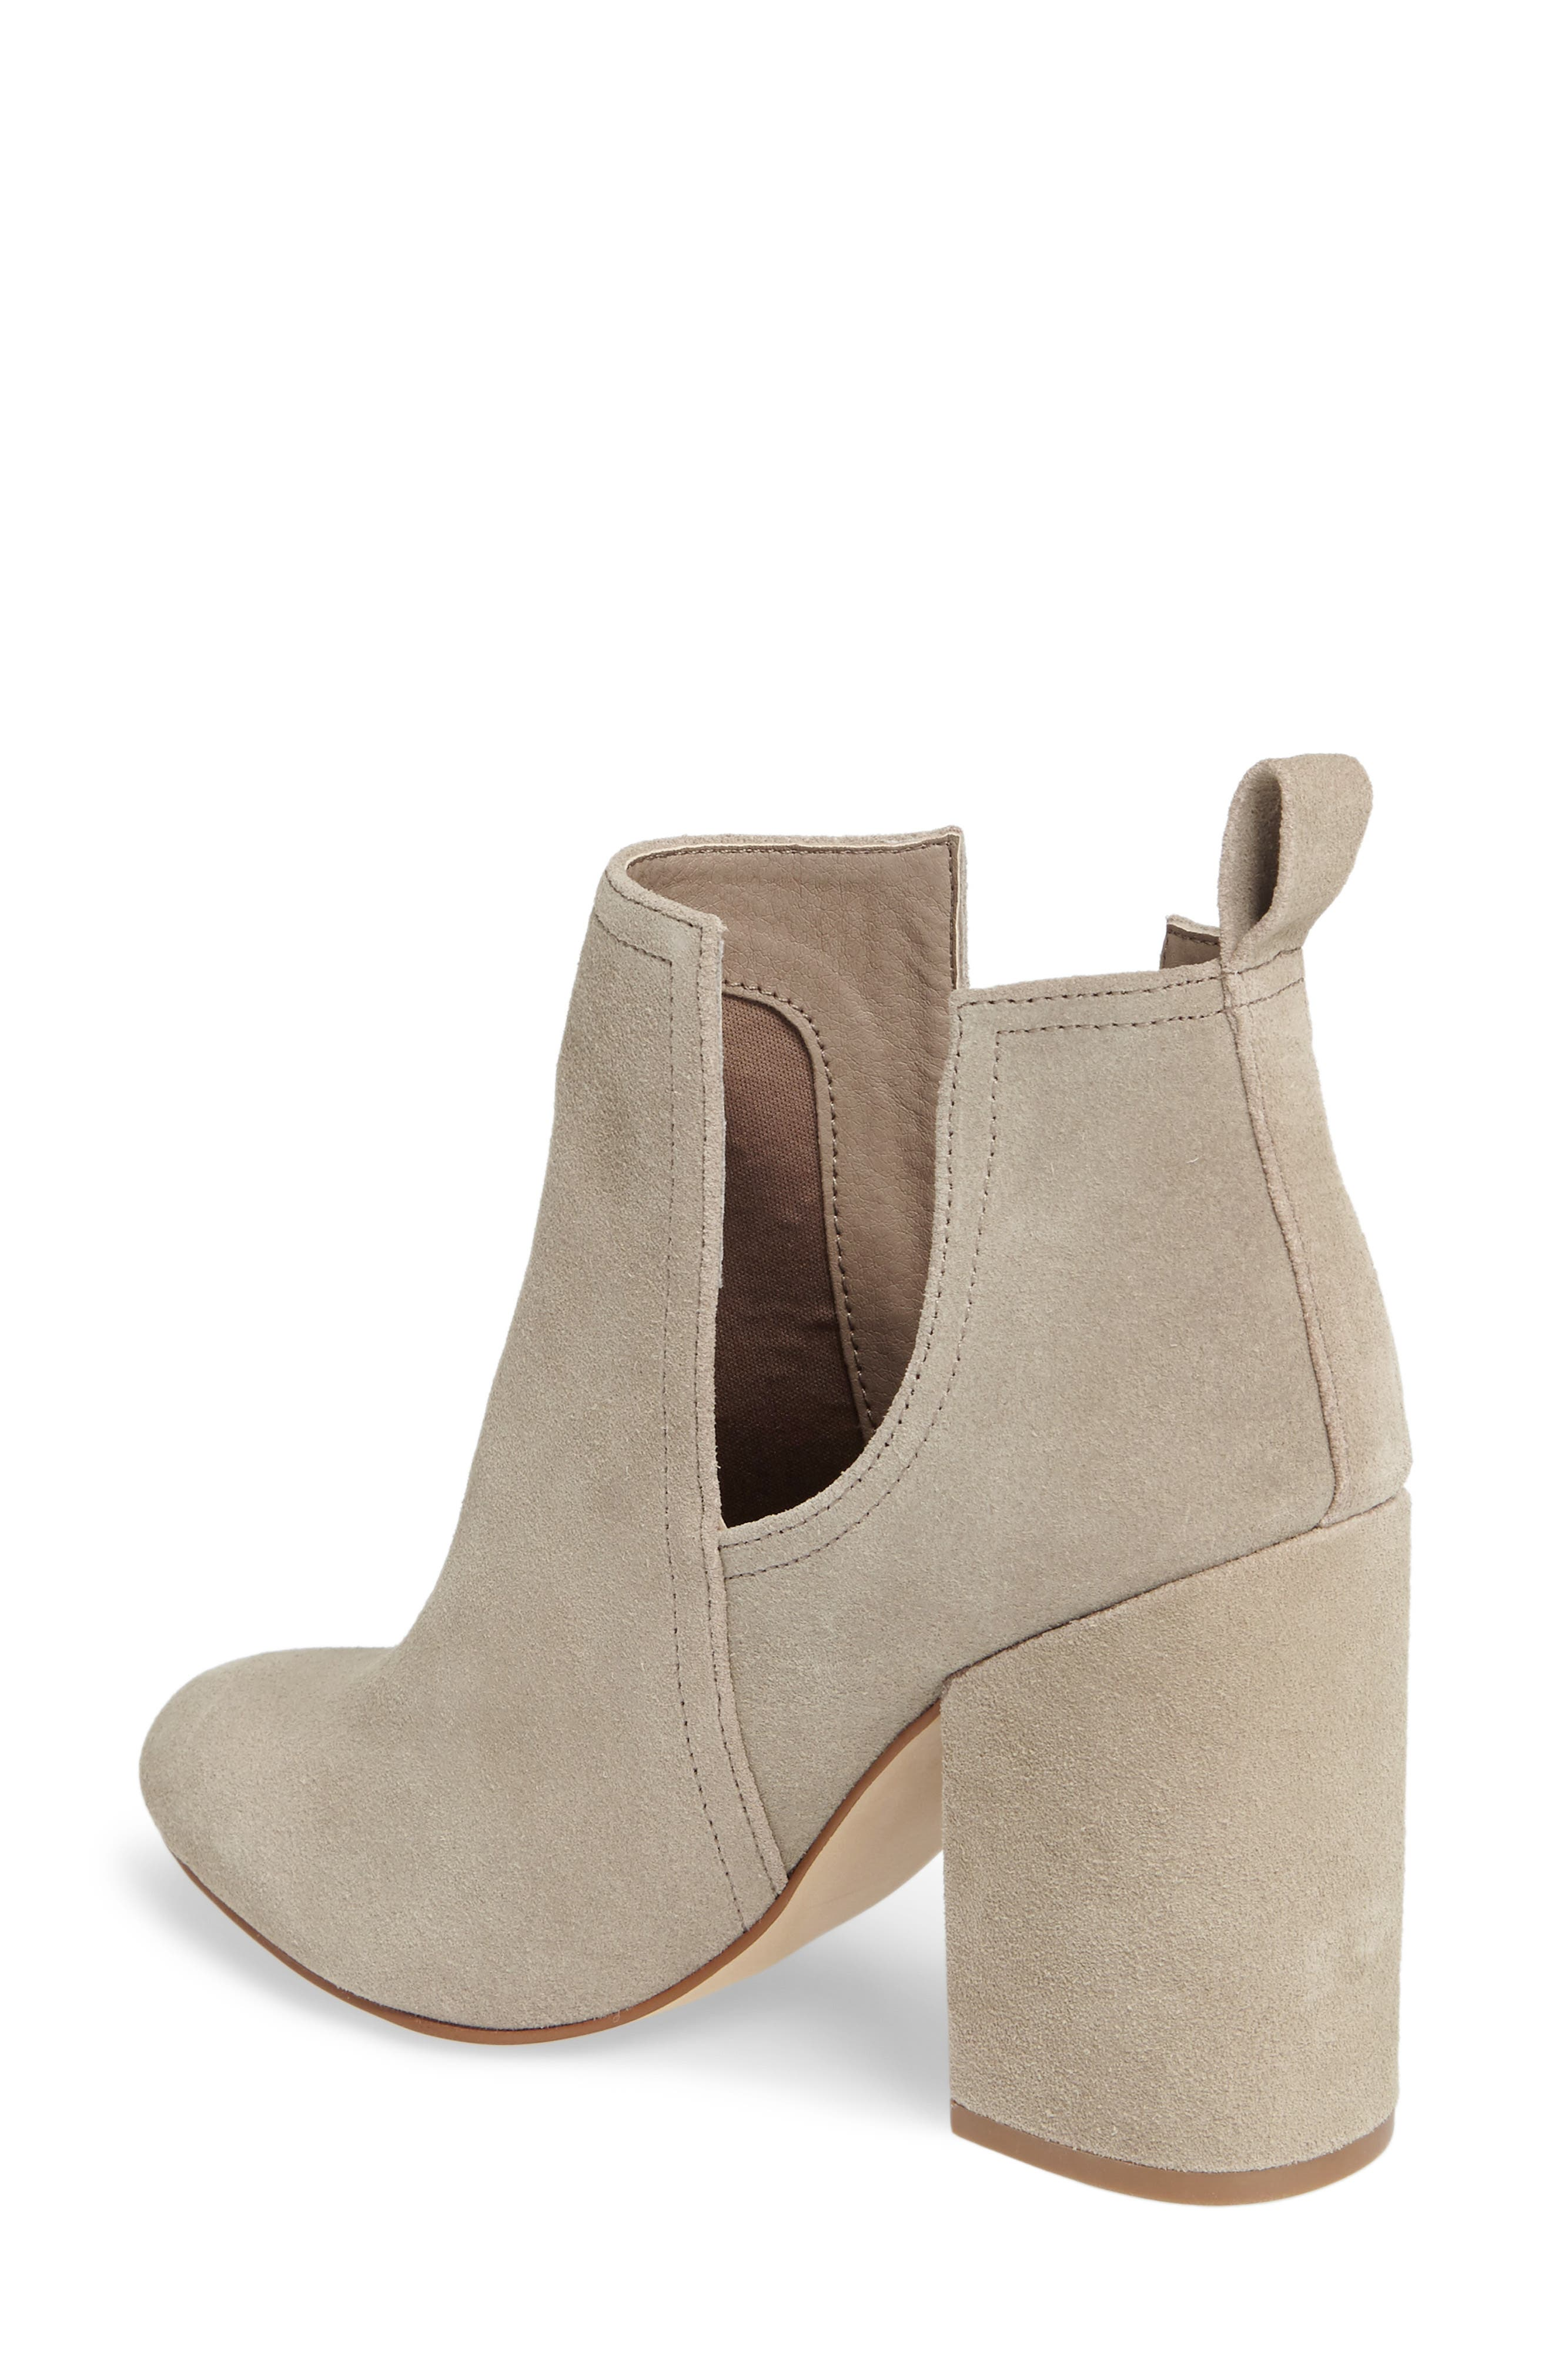 Naomi Cutout Bootie,                             Alternate thumbnail 2, color,                             Taupe Suede